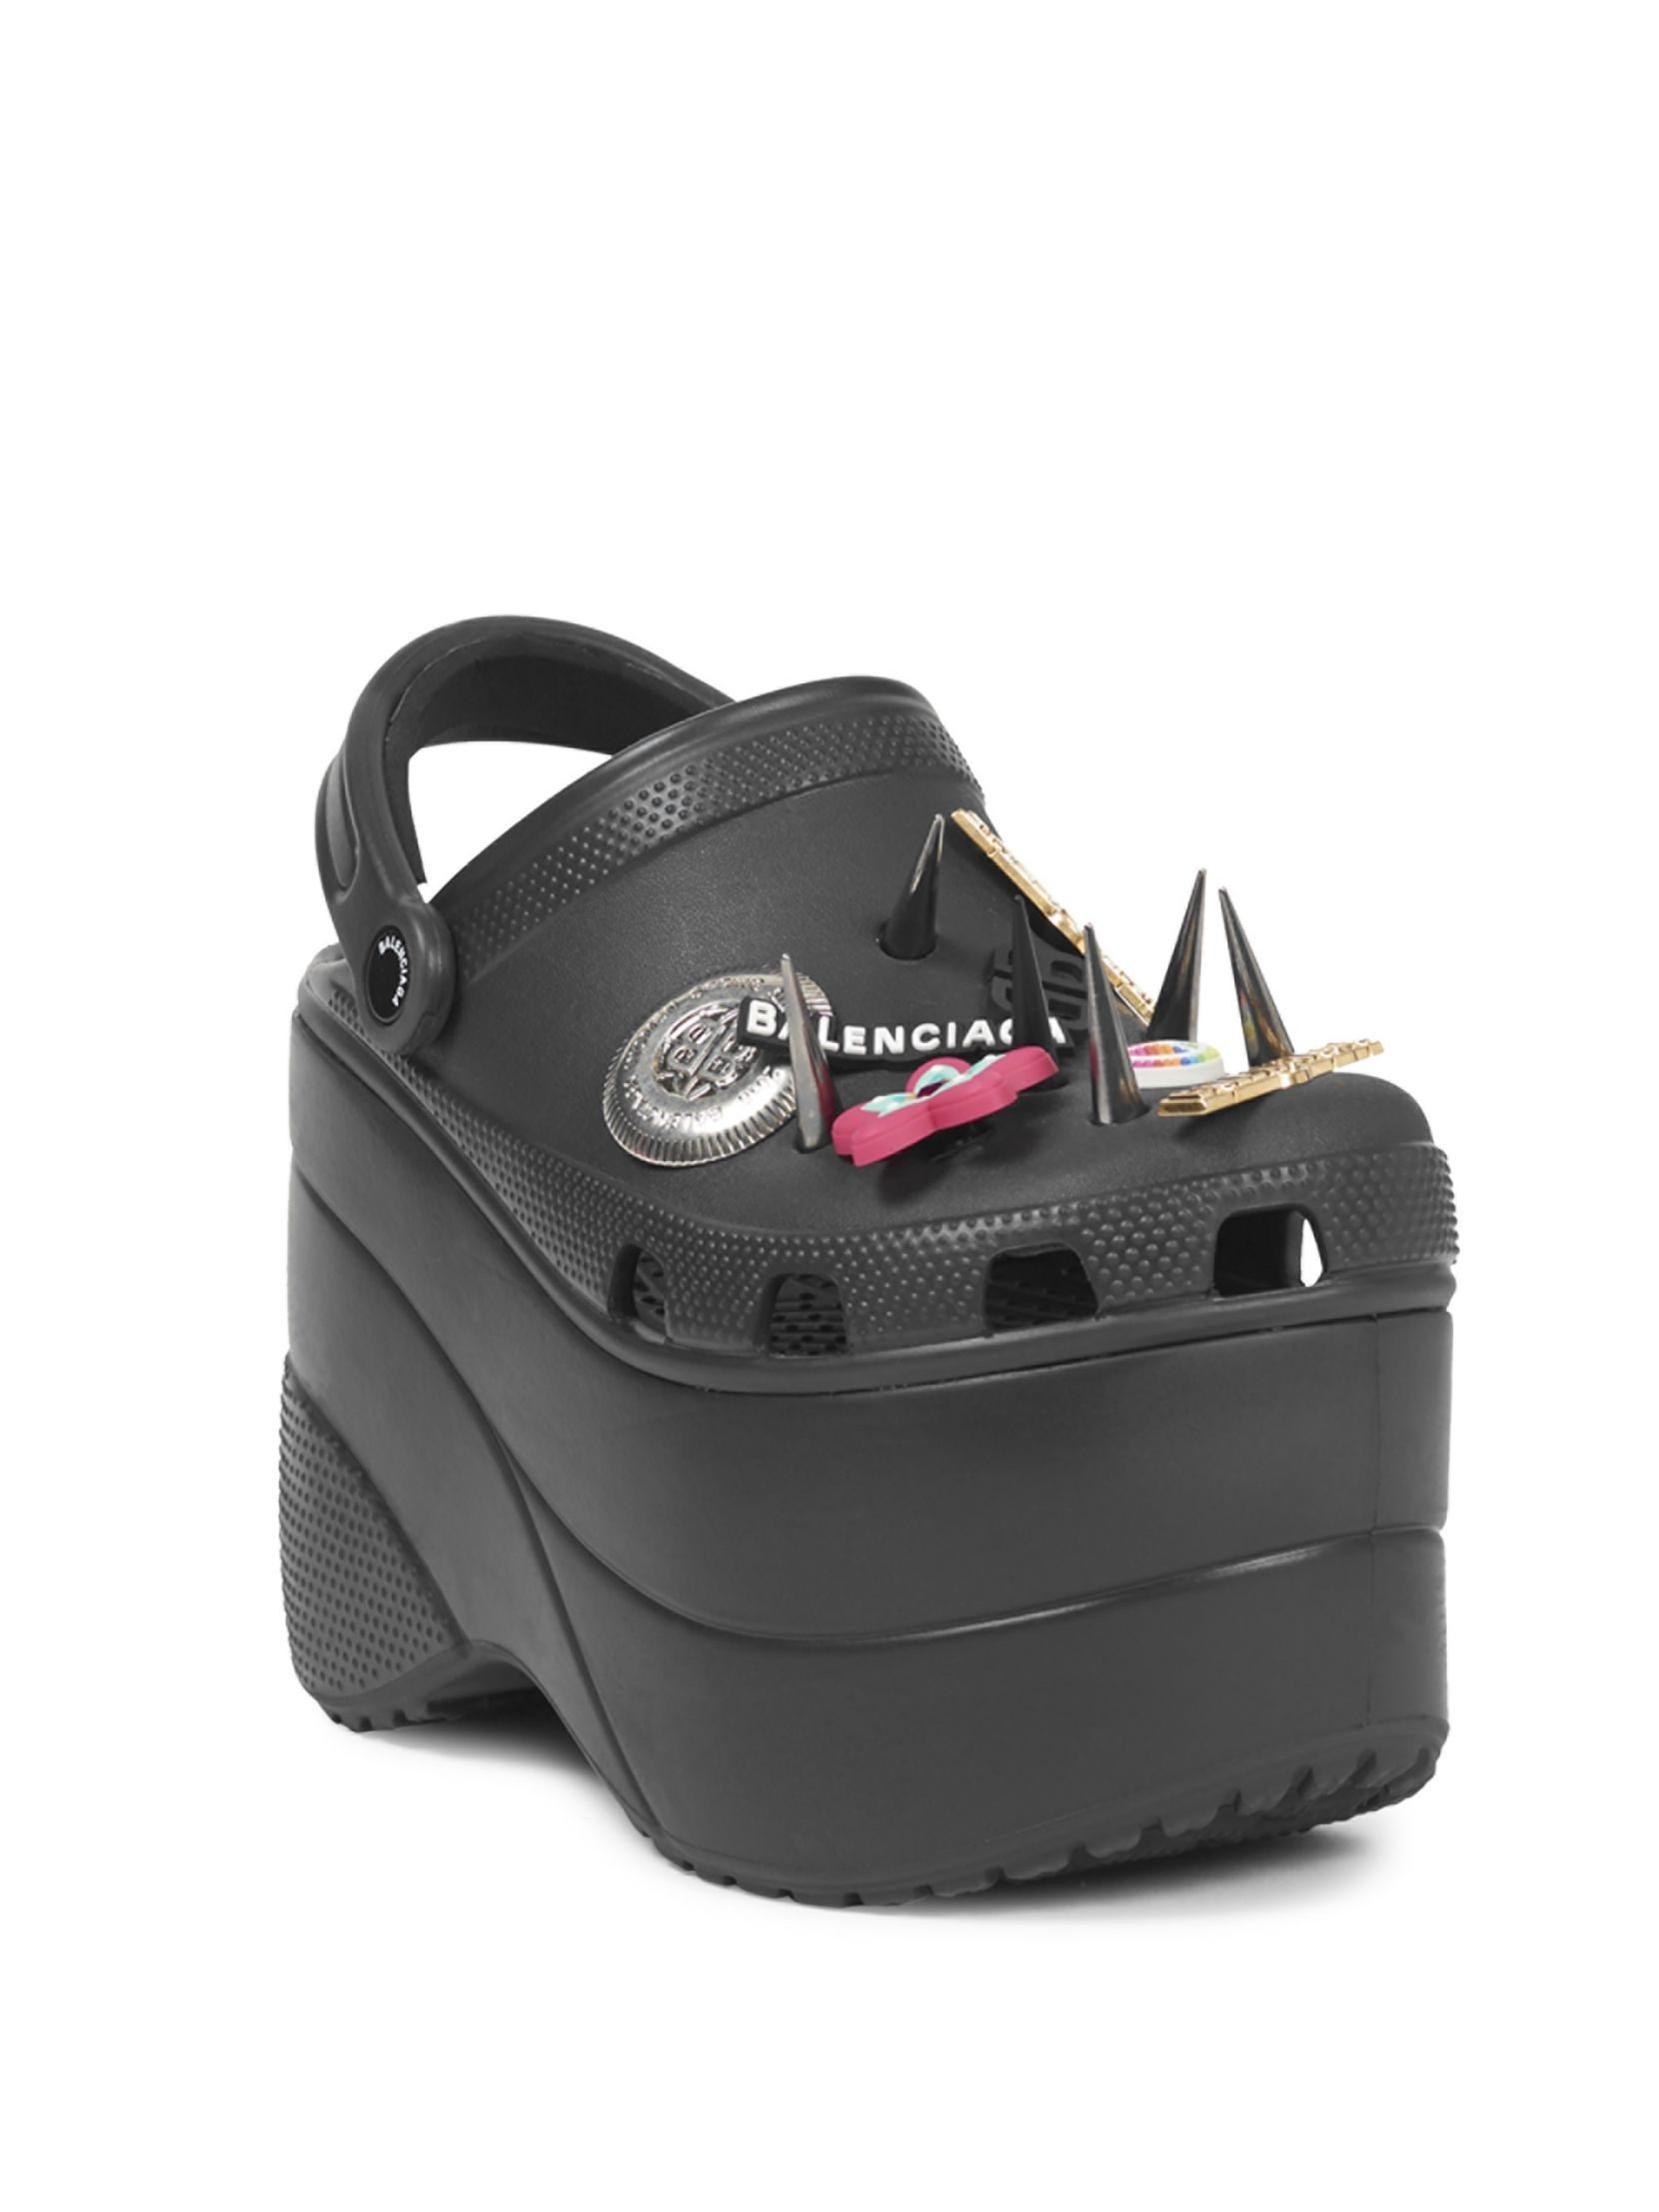 47b4238e3355c Balenciaga Black Foam Platform Crocs With Spikes